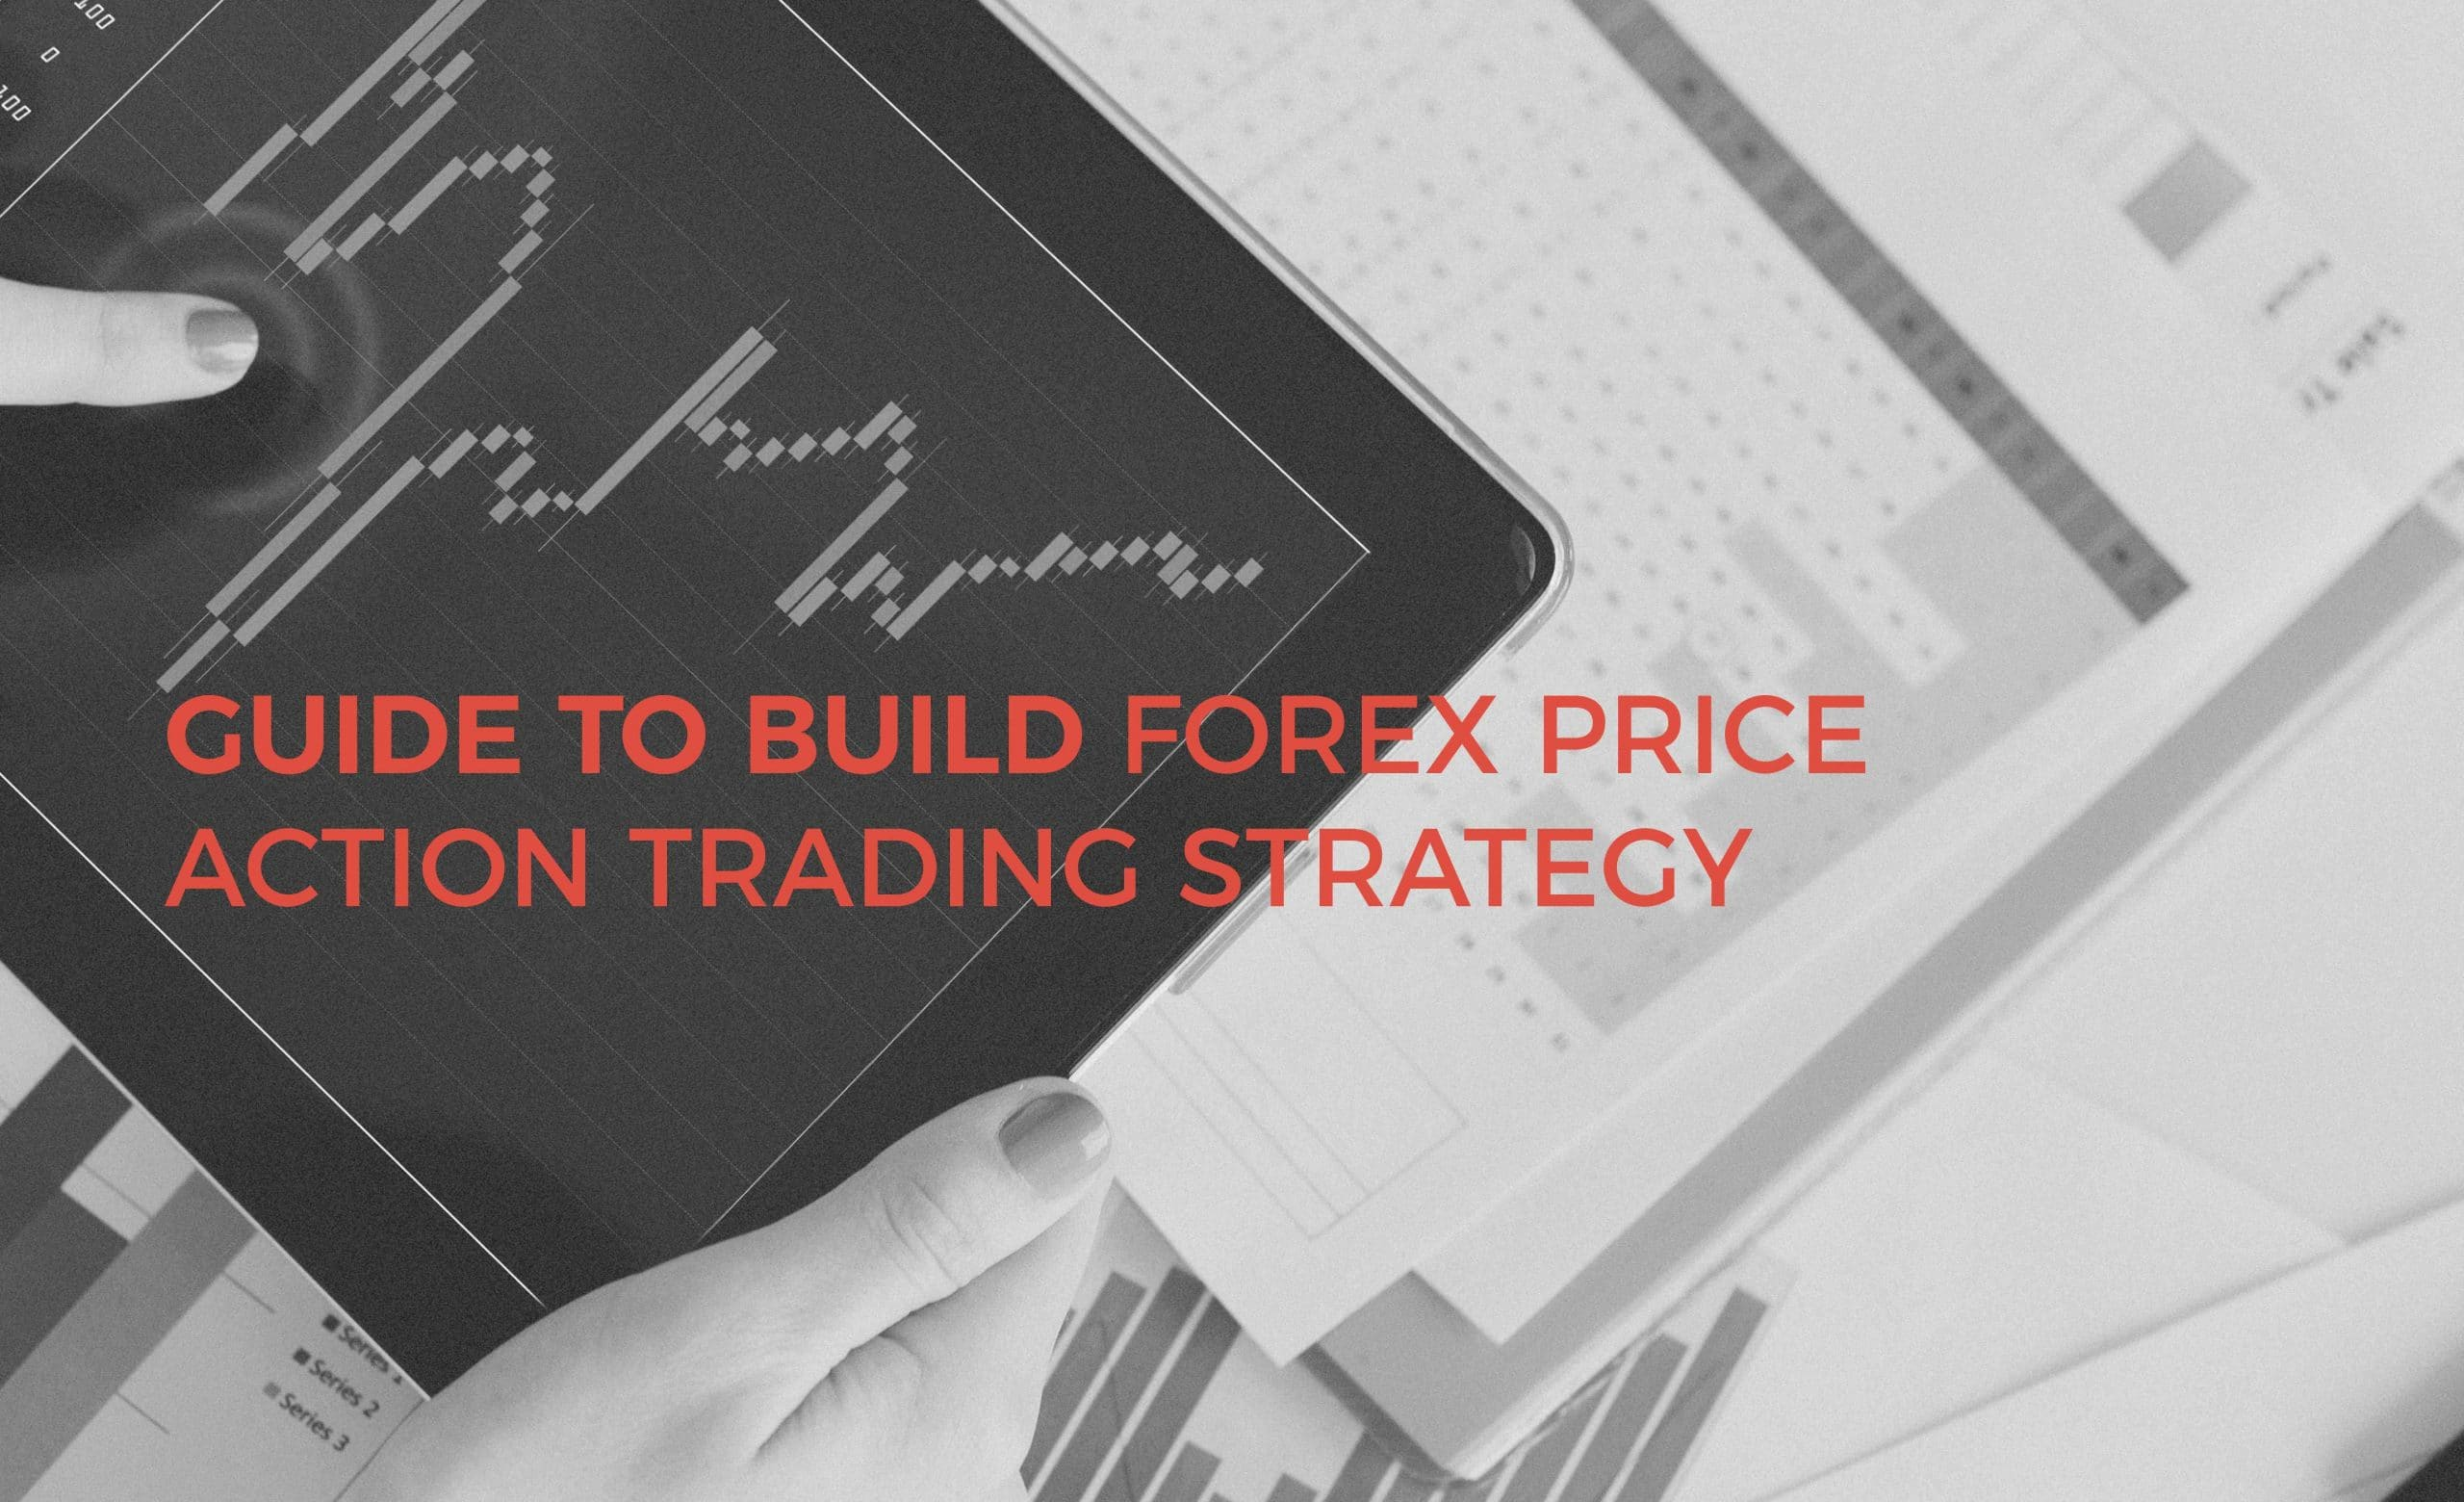 Guide to Build Forex Price Action Trading Strategy